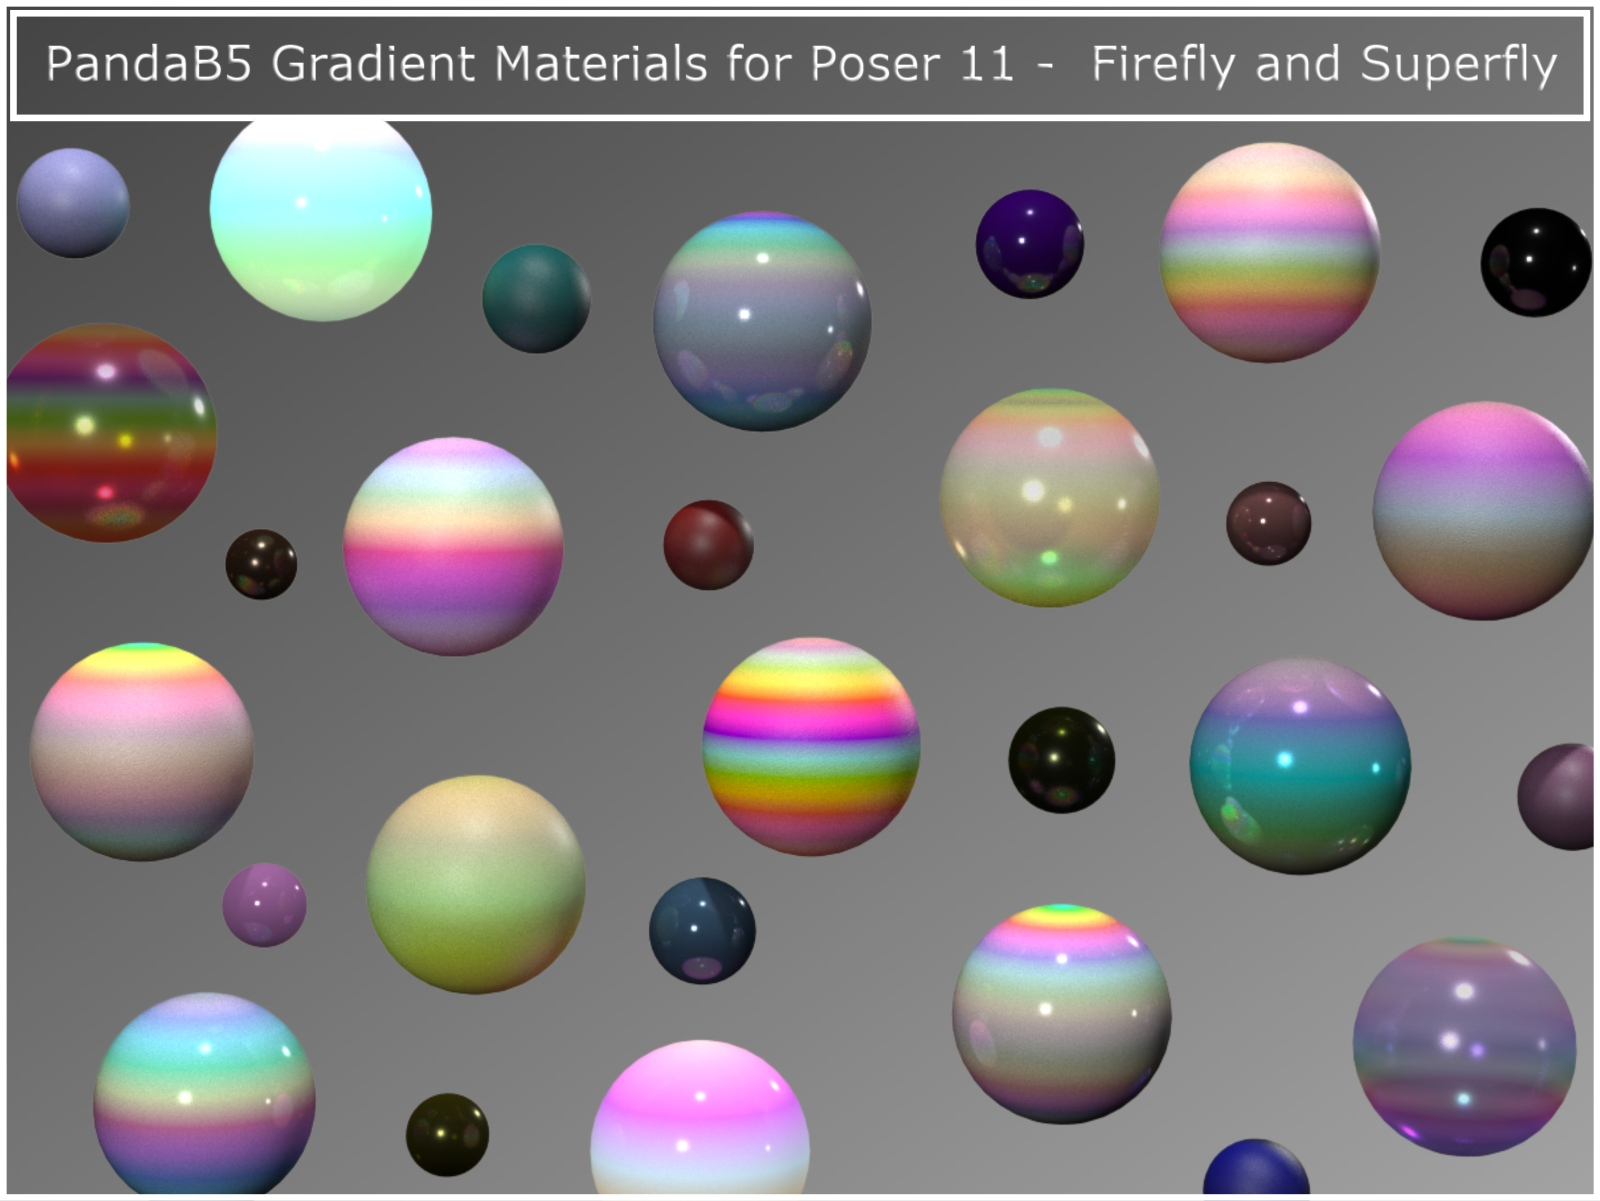 PandaB5 Gradient Materials for Poser